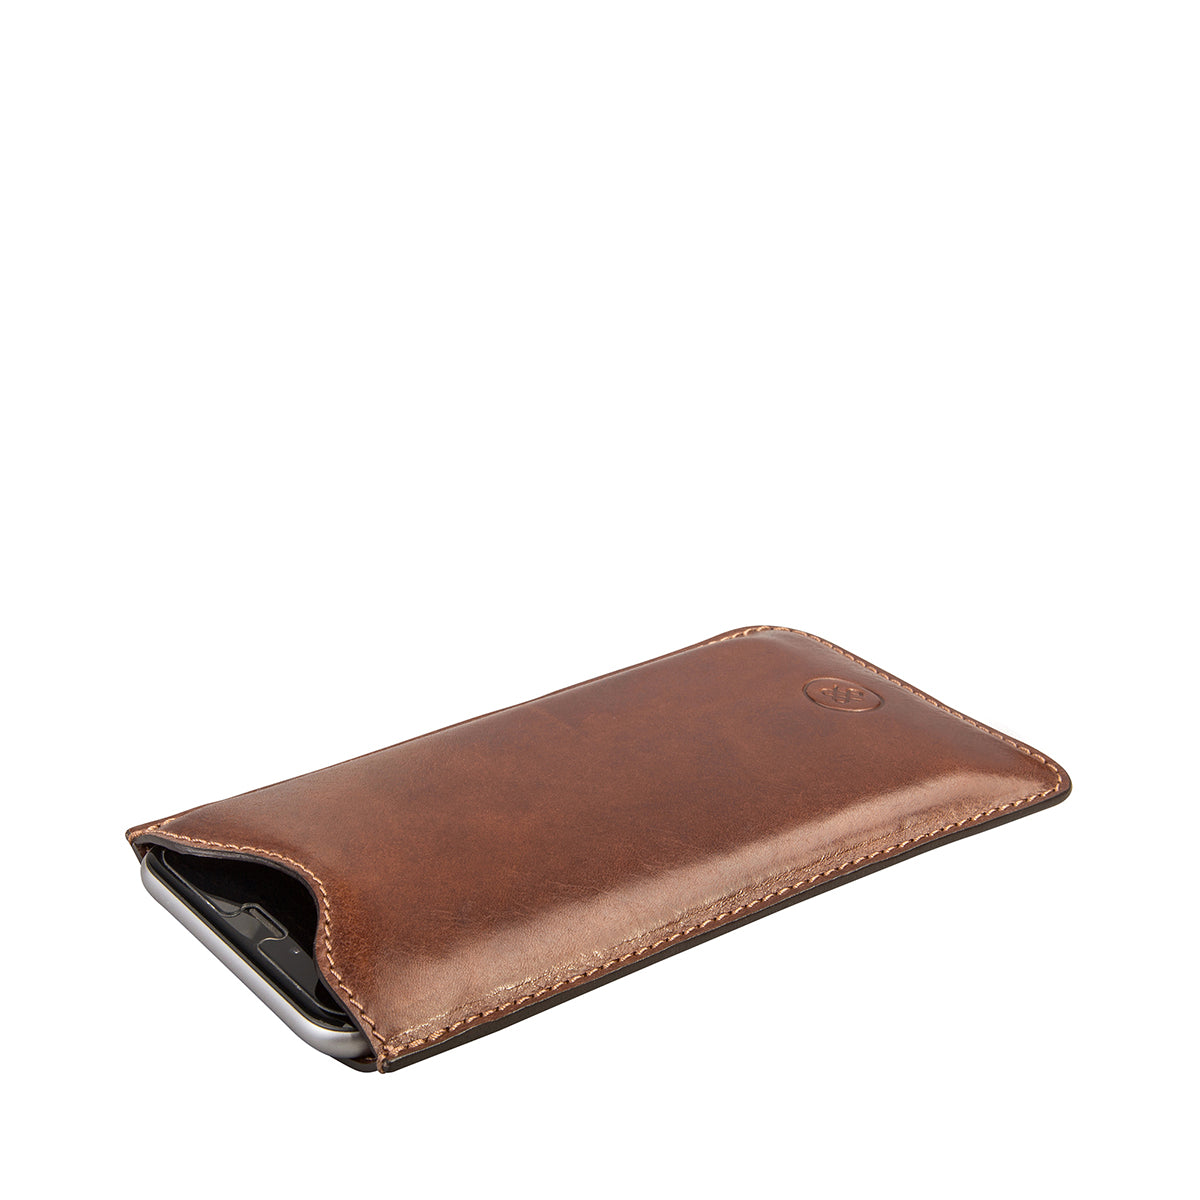 Image 3 of the 'Dosolo' Chestnut Veg-Tanned Leather iPhone 6+ Size Case